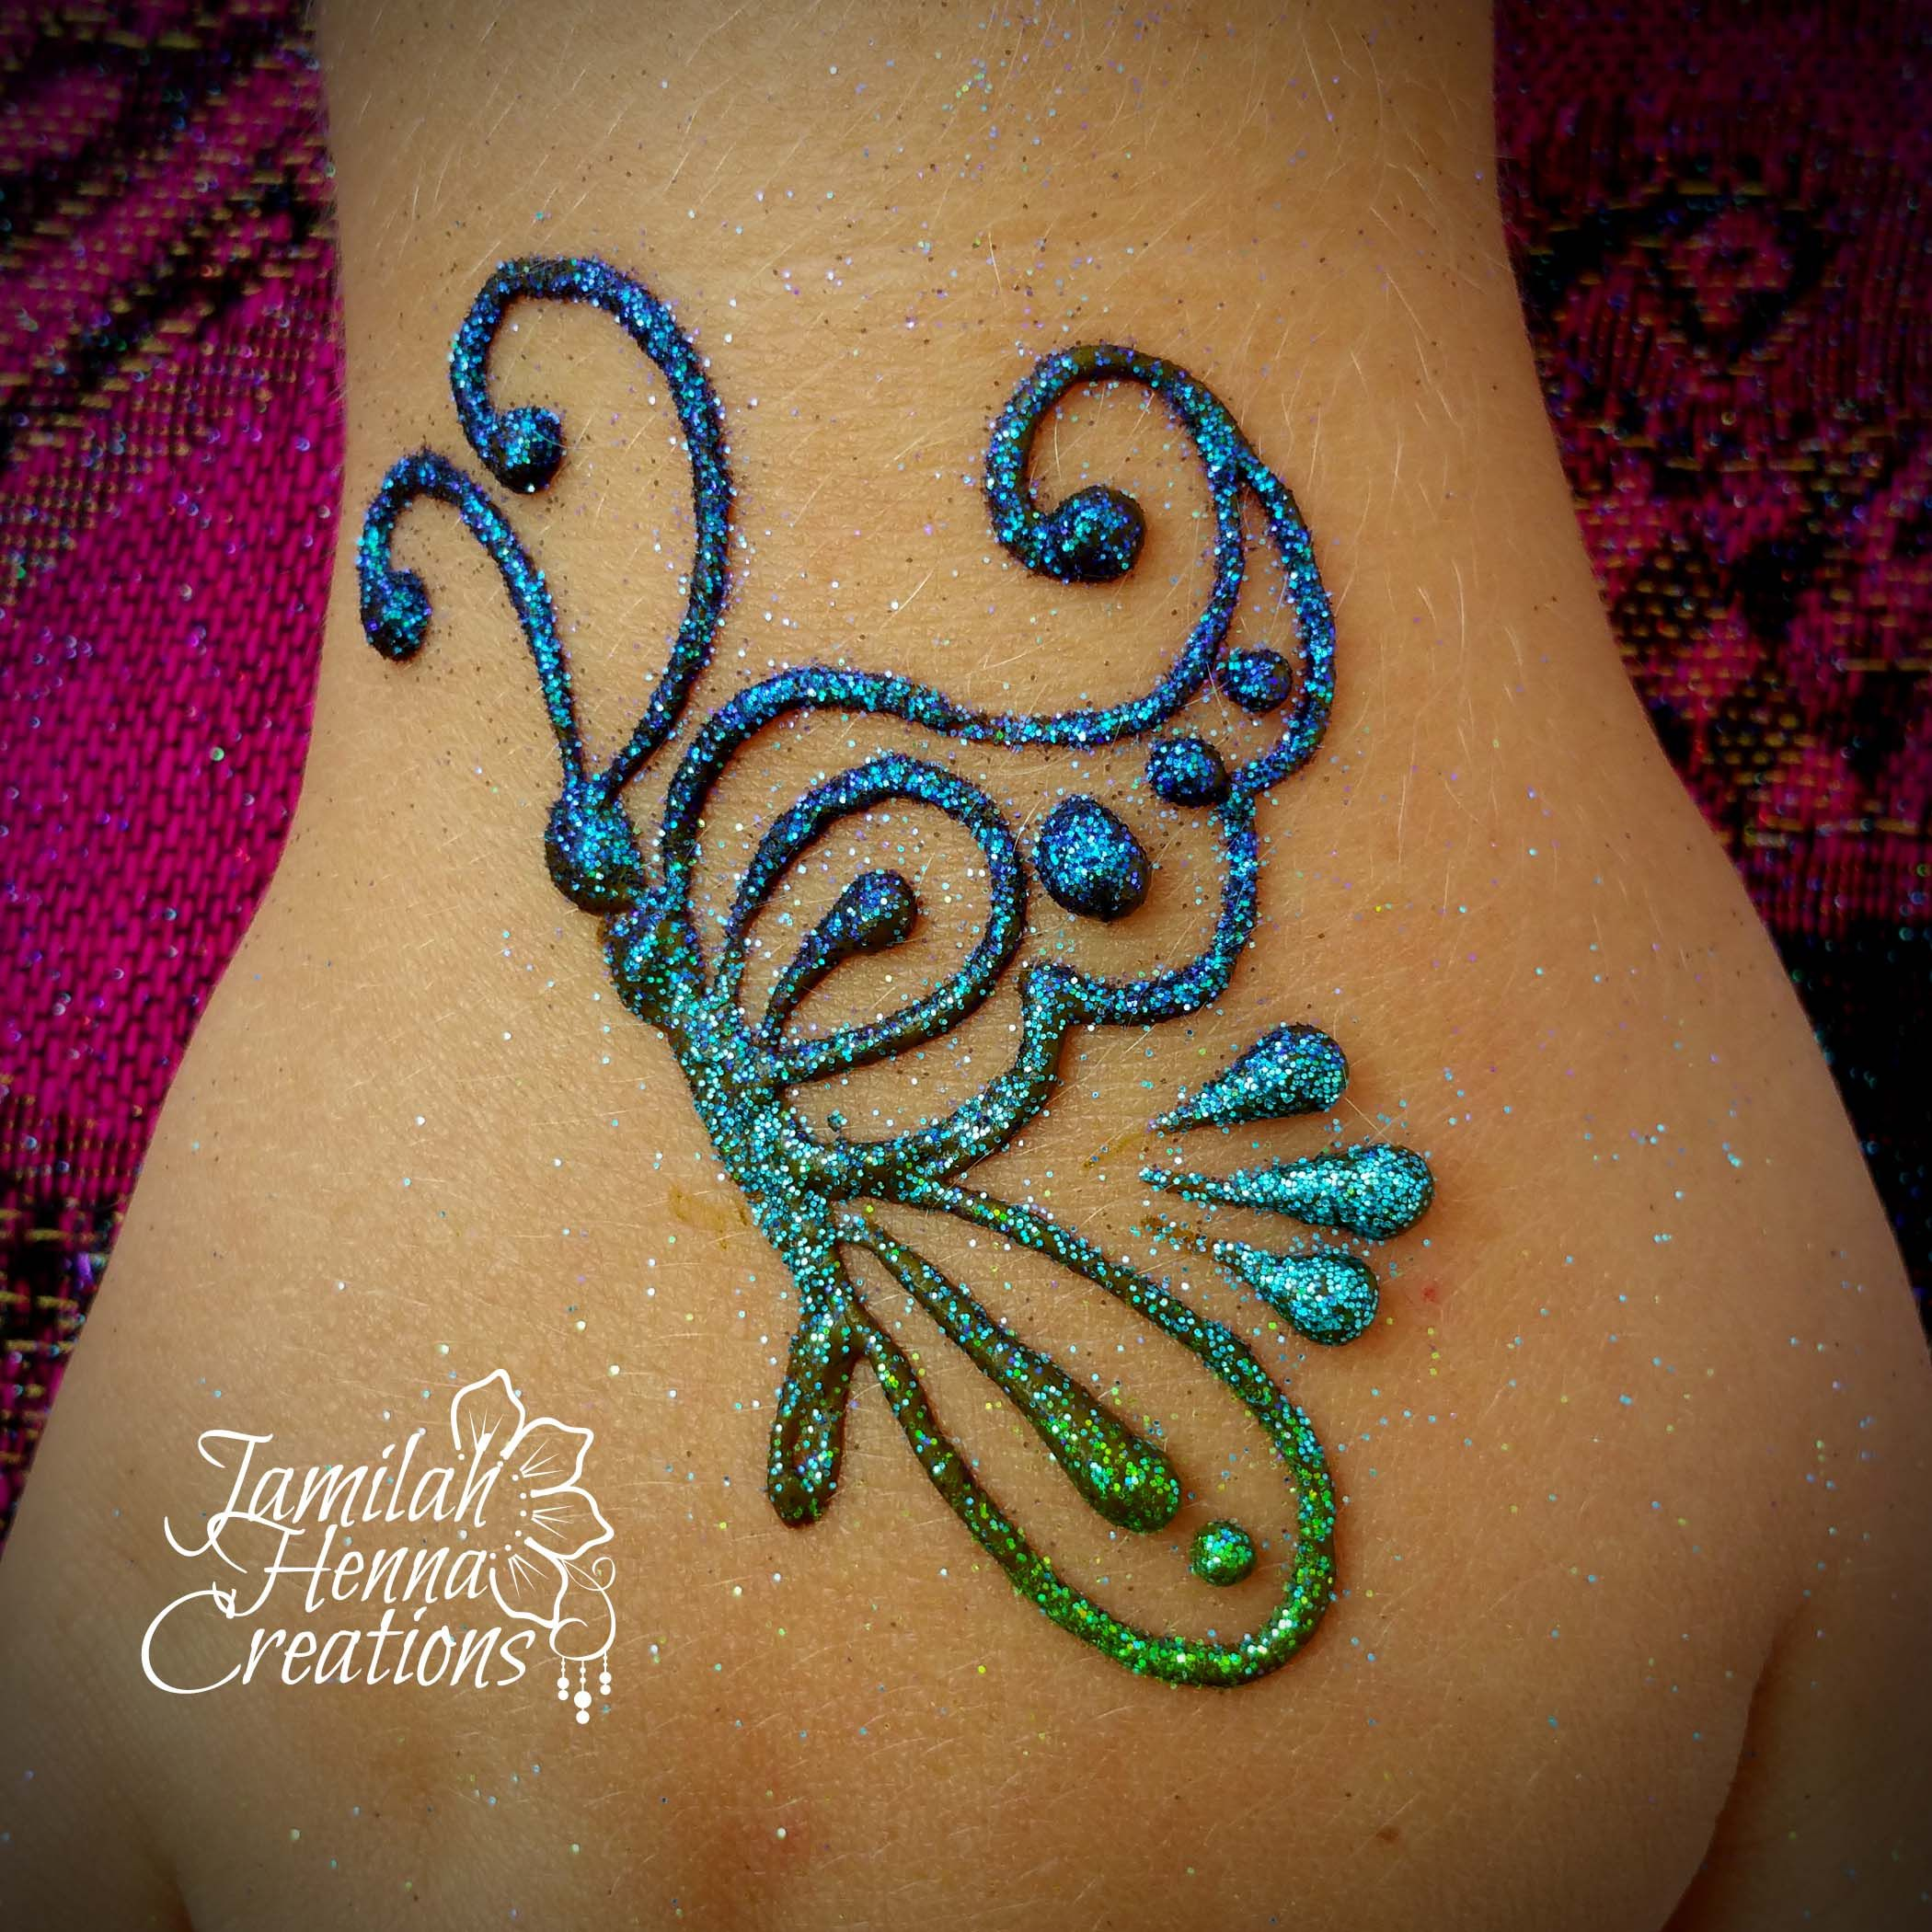 Simple Henna Tattoo Henna Tattoo: Butterfly Henna Www.JamilahHennaCreations.com